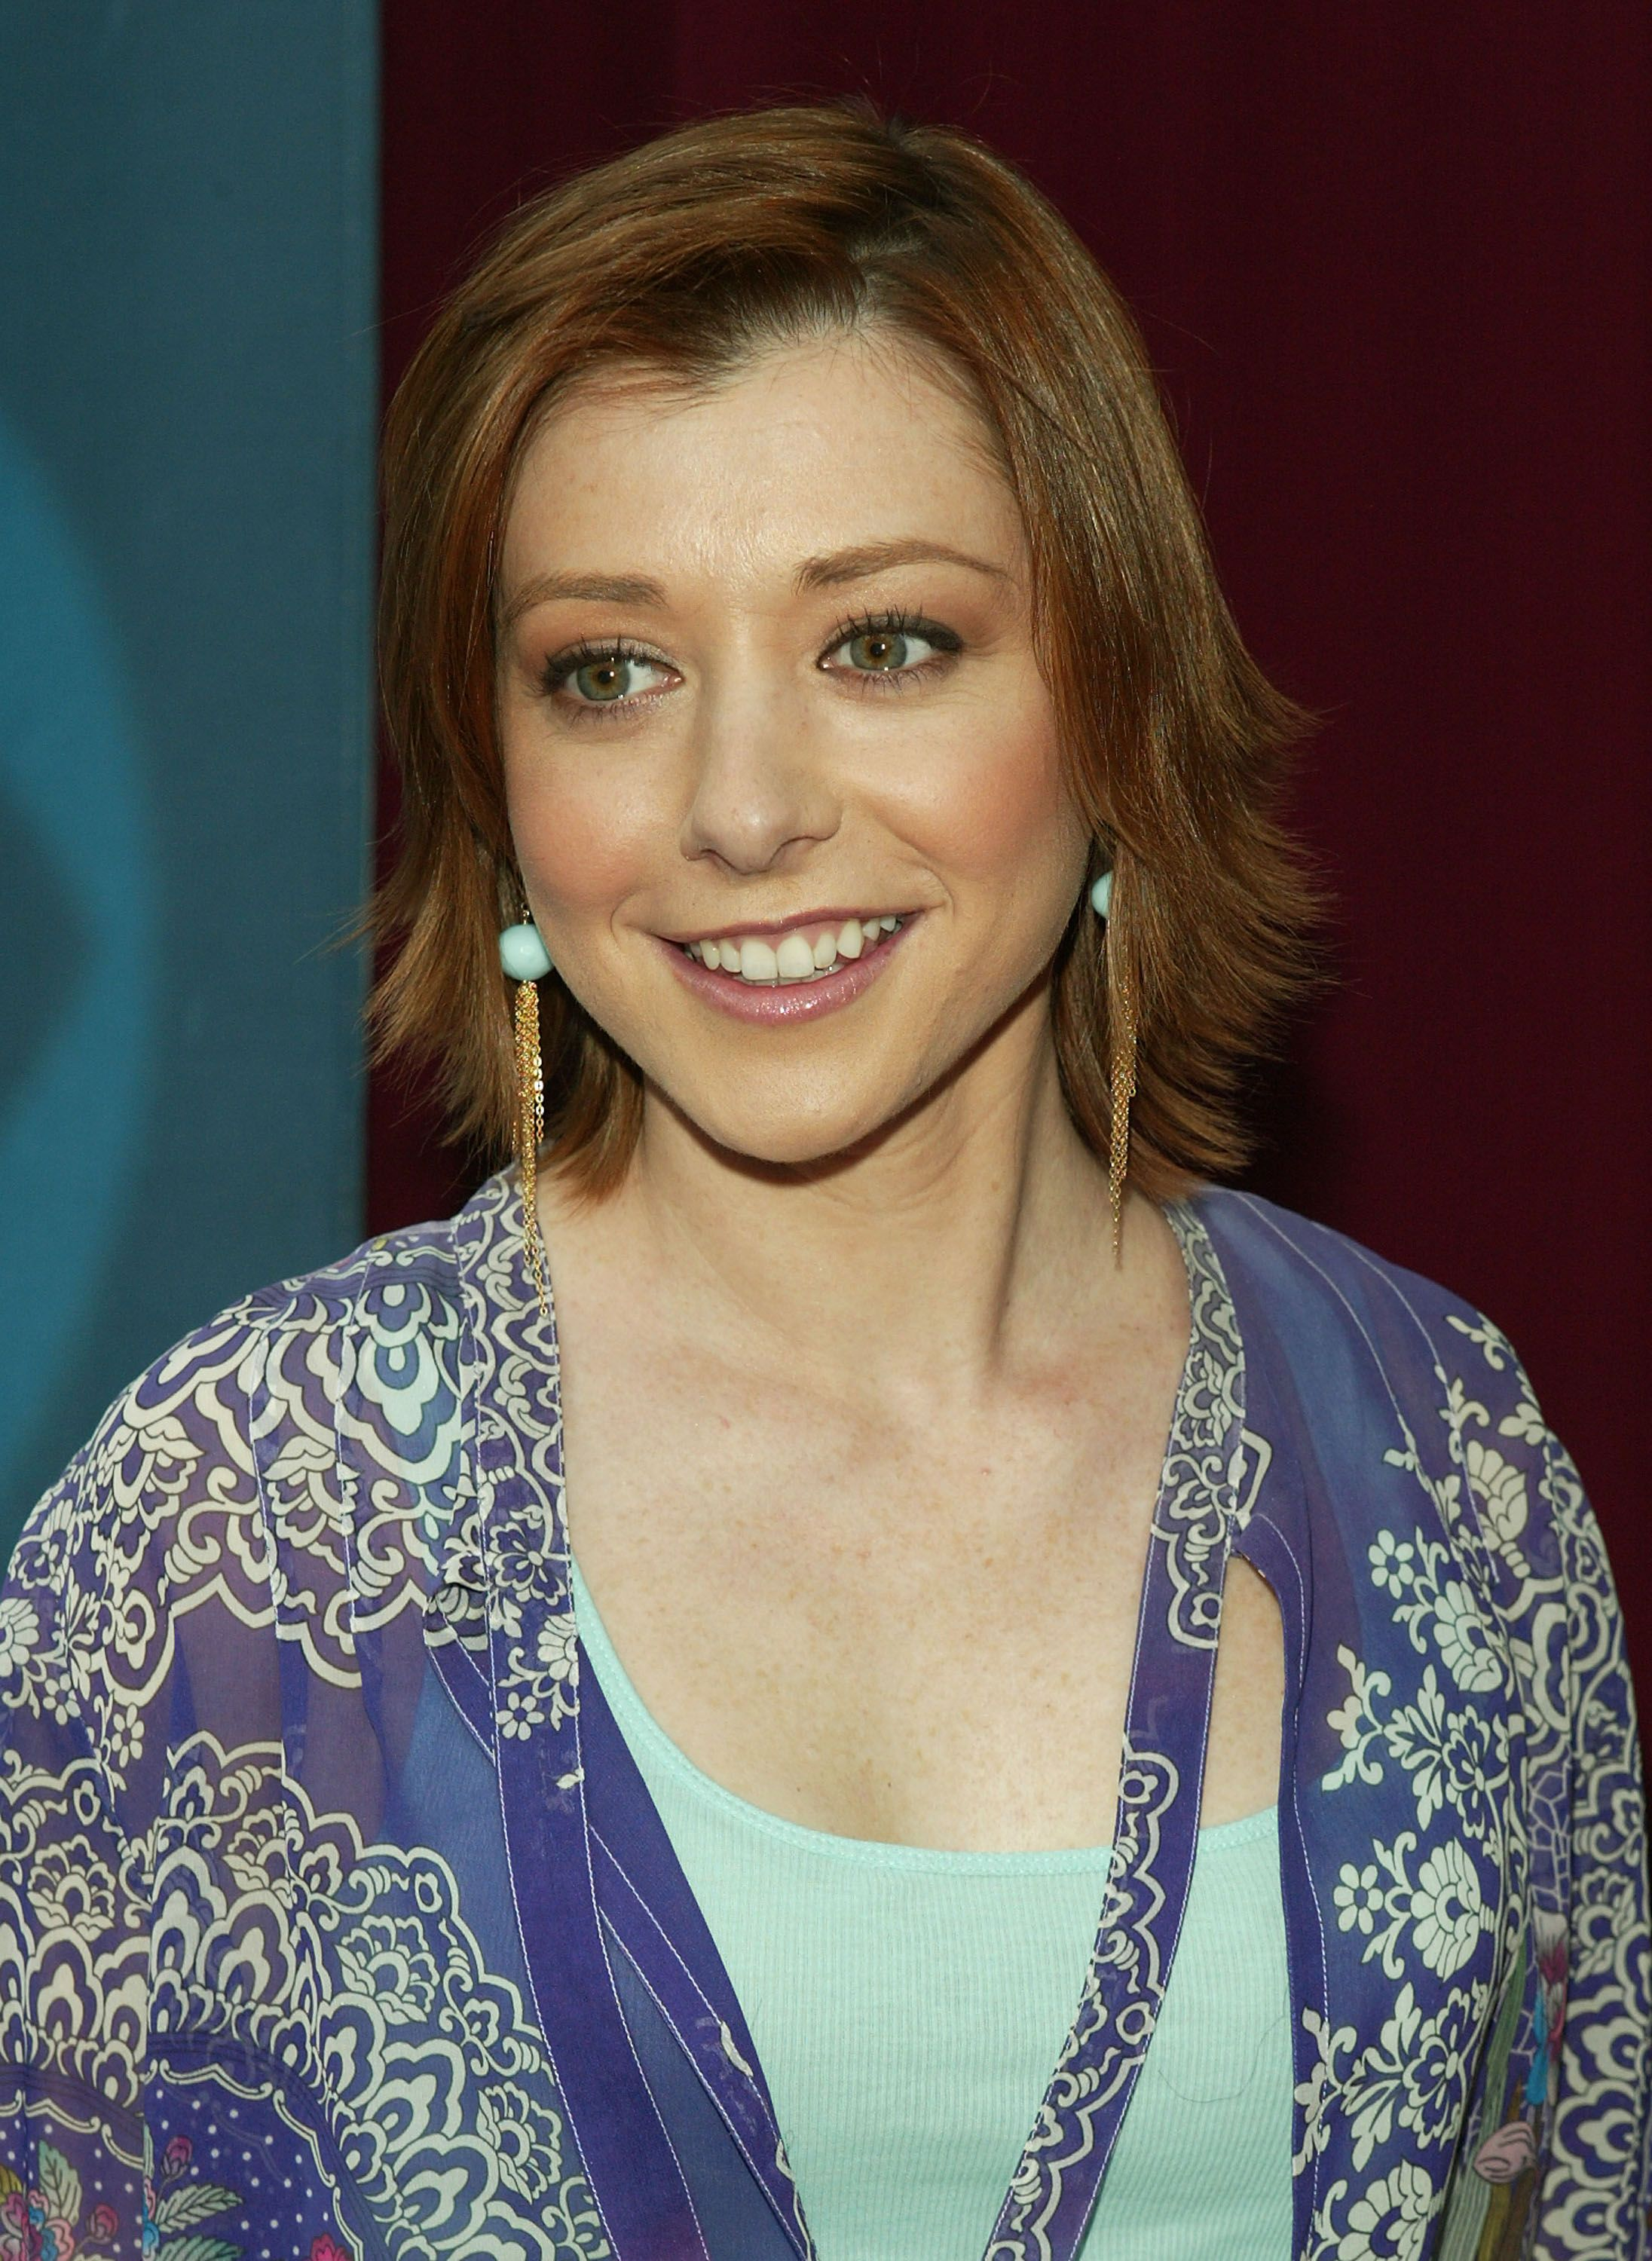 Alyson Hannigan was famous for her other role before starring in American Pie / Getty Images